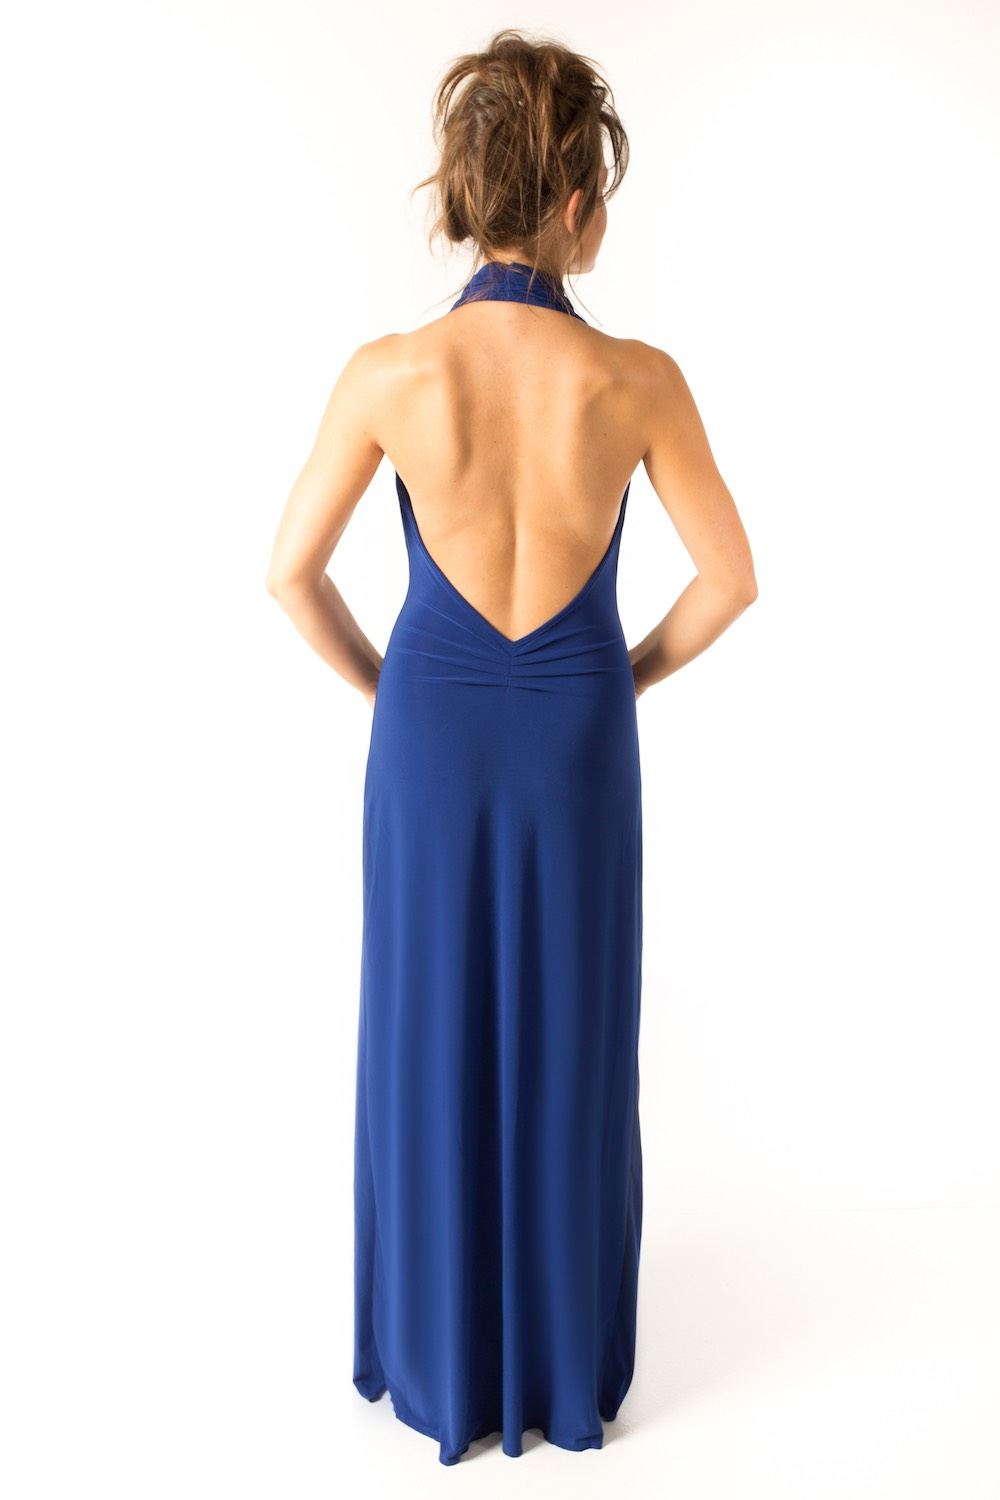 Dress L100 Blue Rear